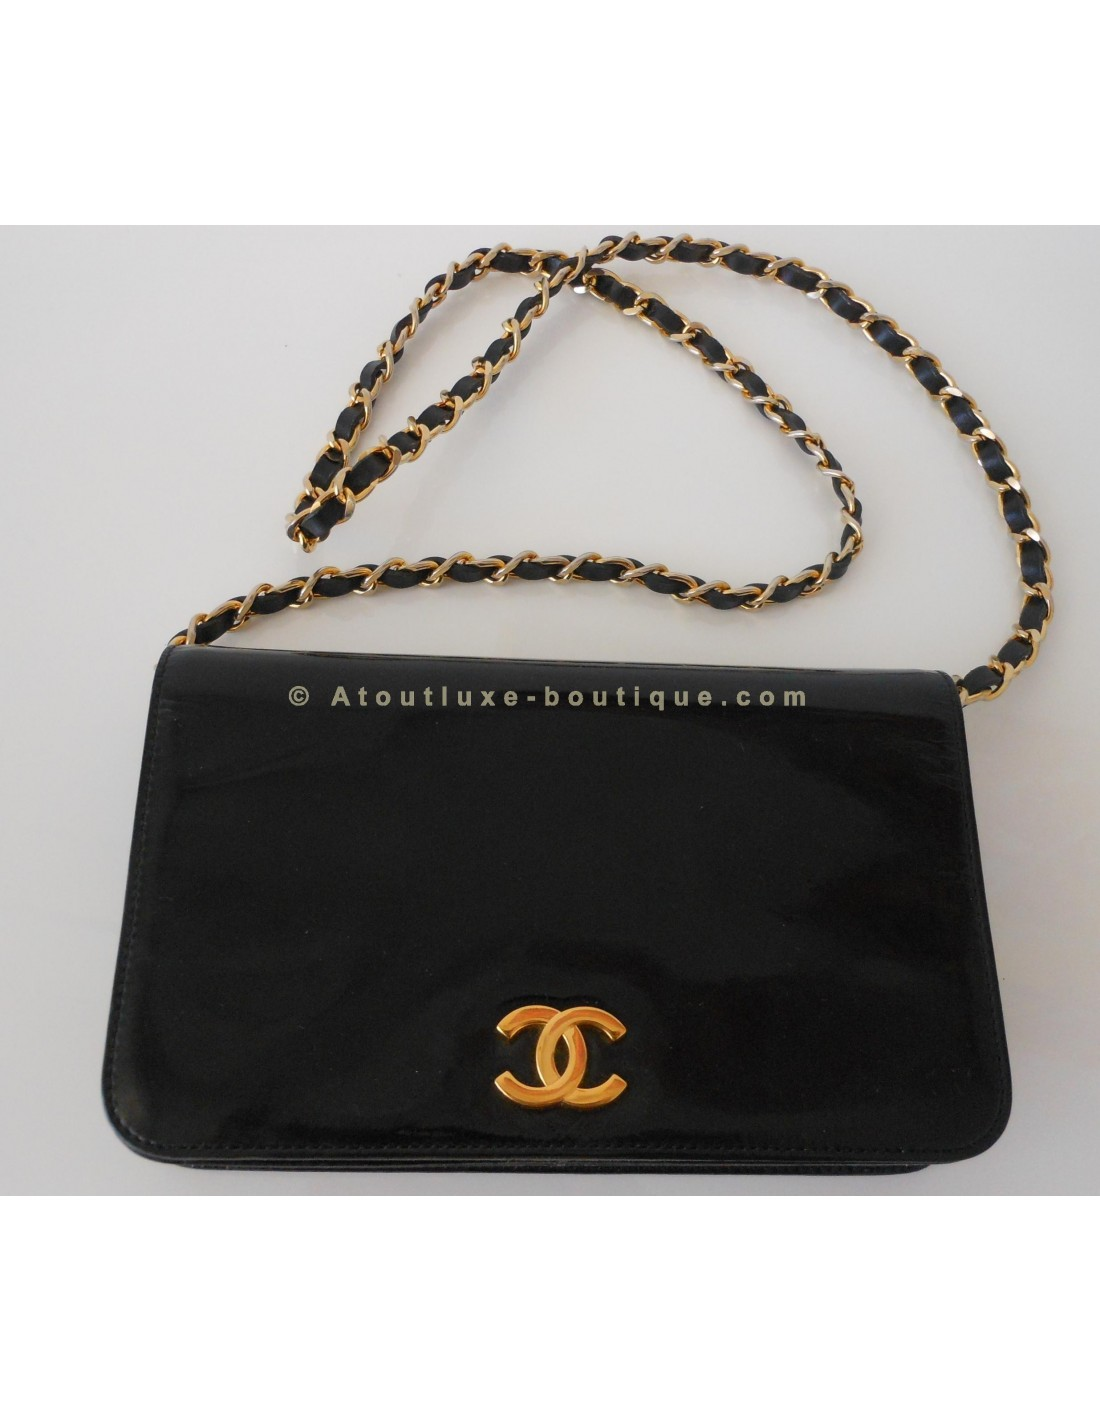 Sac chanel verni noir atoutluxe boutique for Sac chanel interieur